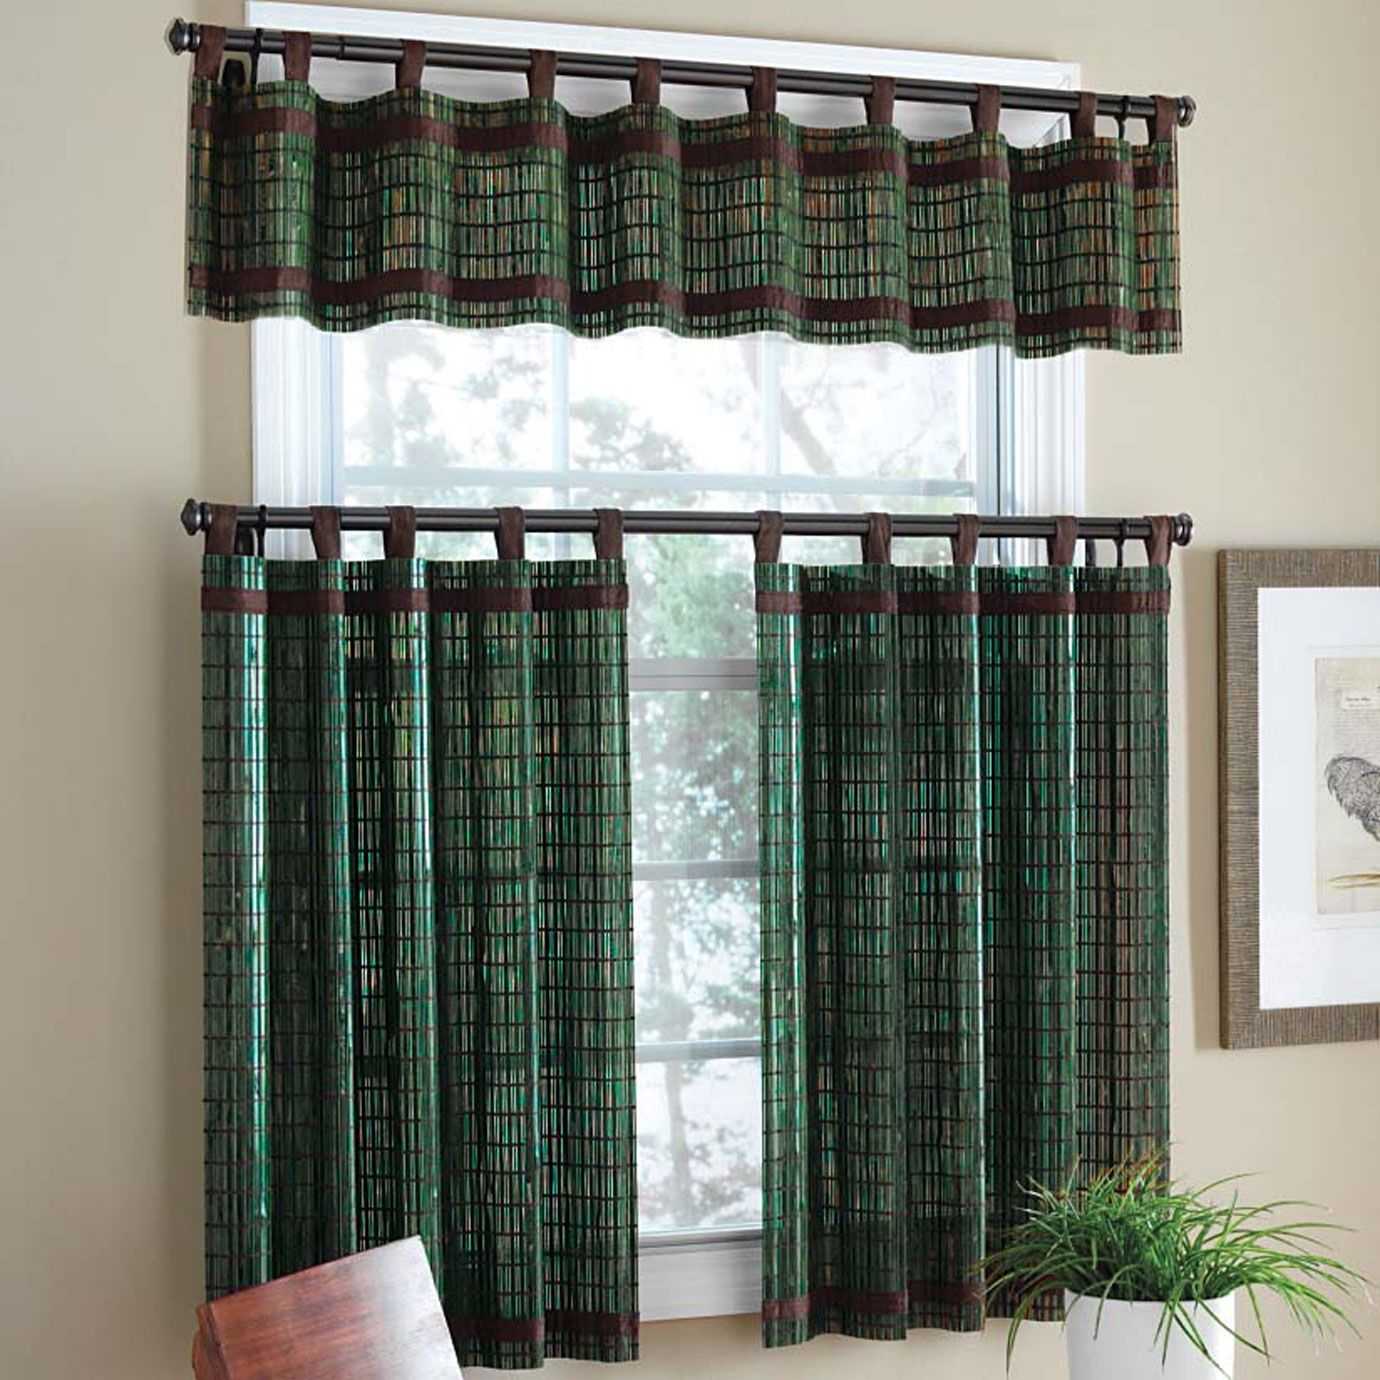 Latest Curtain Designs For Bedroom Amazing Photos Of World Latest Designs Of Interior Of Curtains